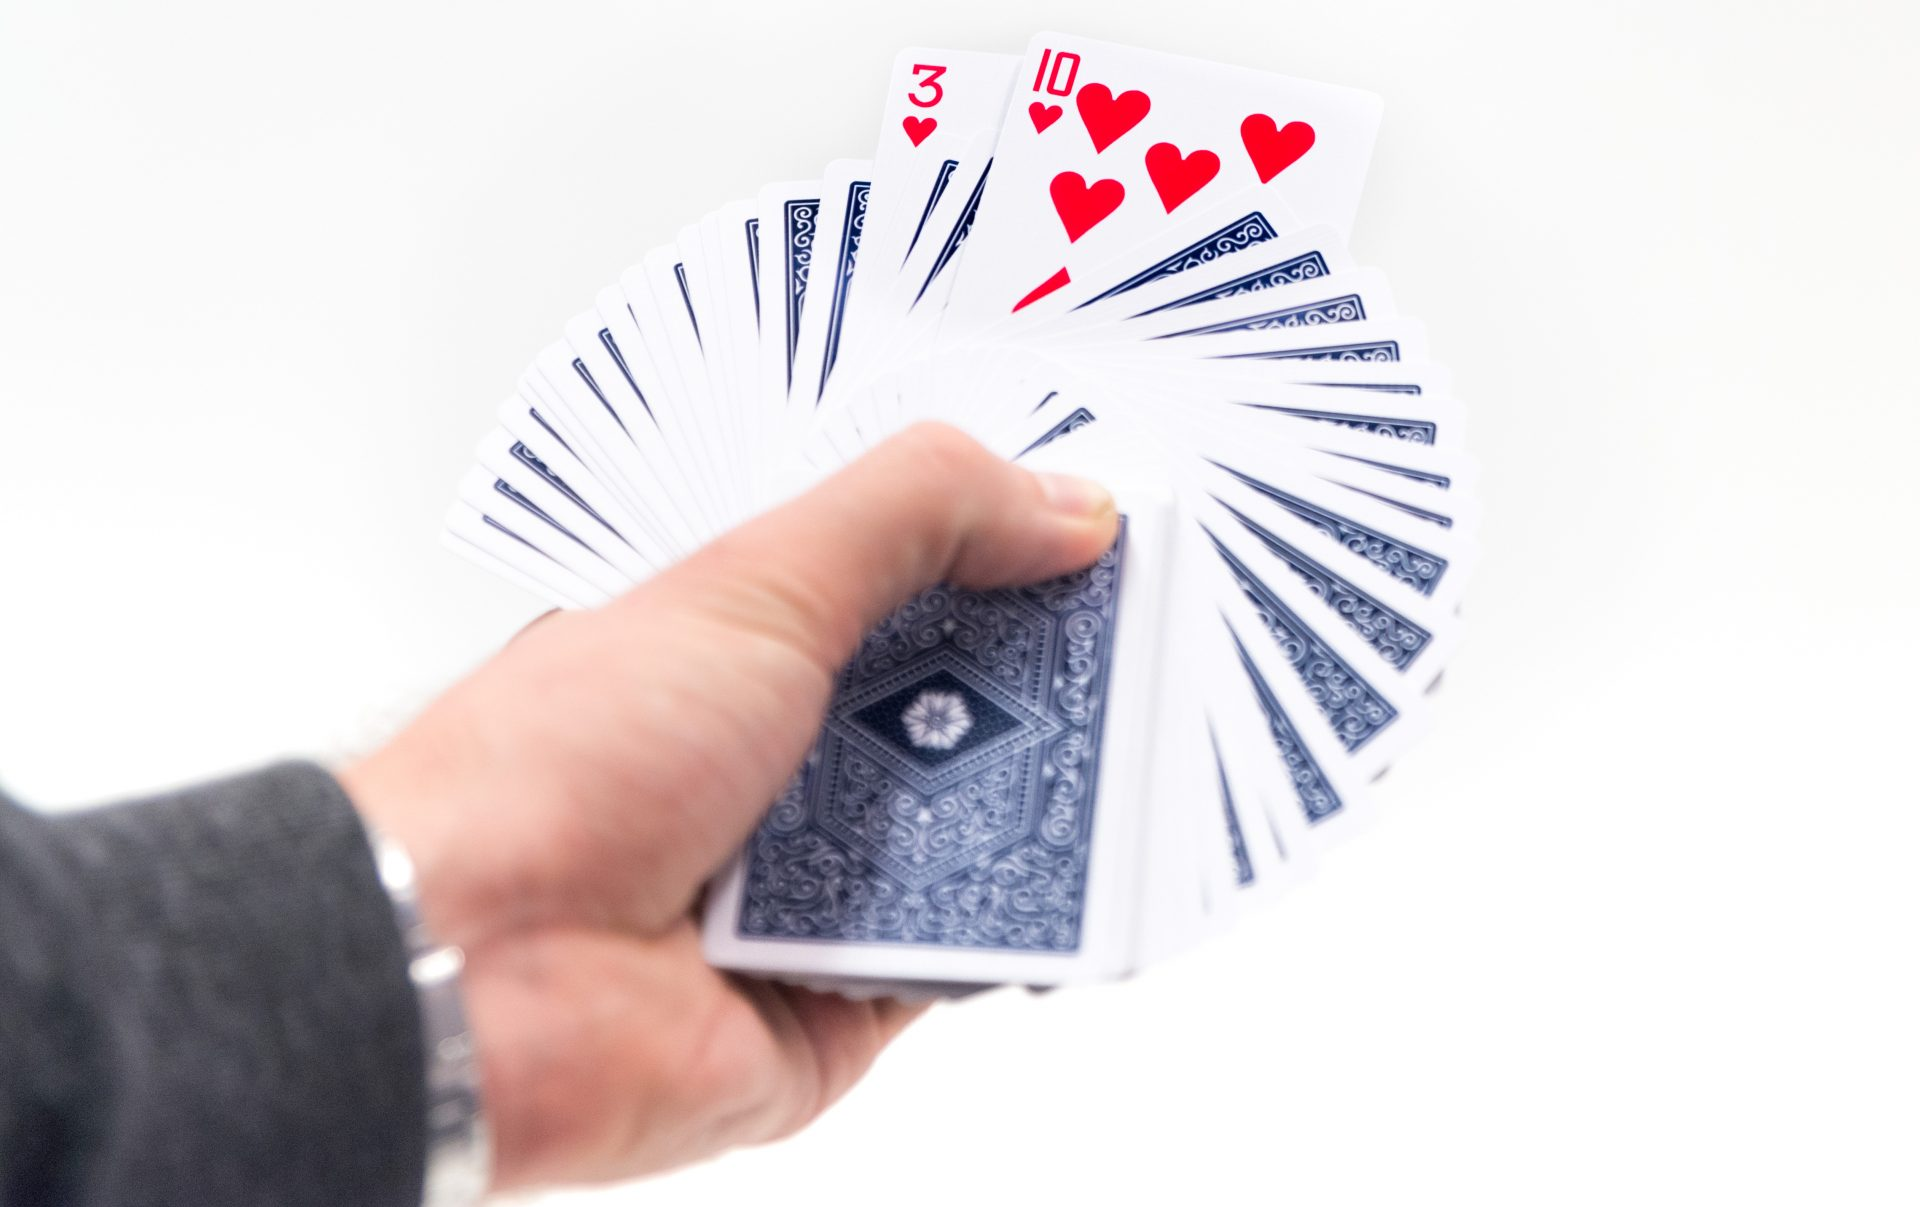 COPAG 310 – for magic and cardistry